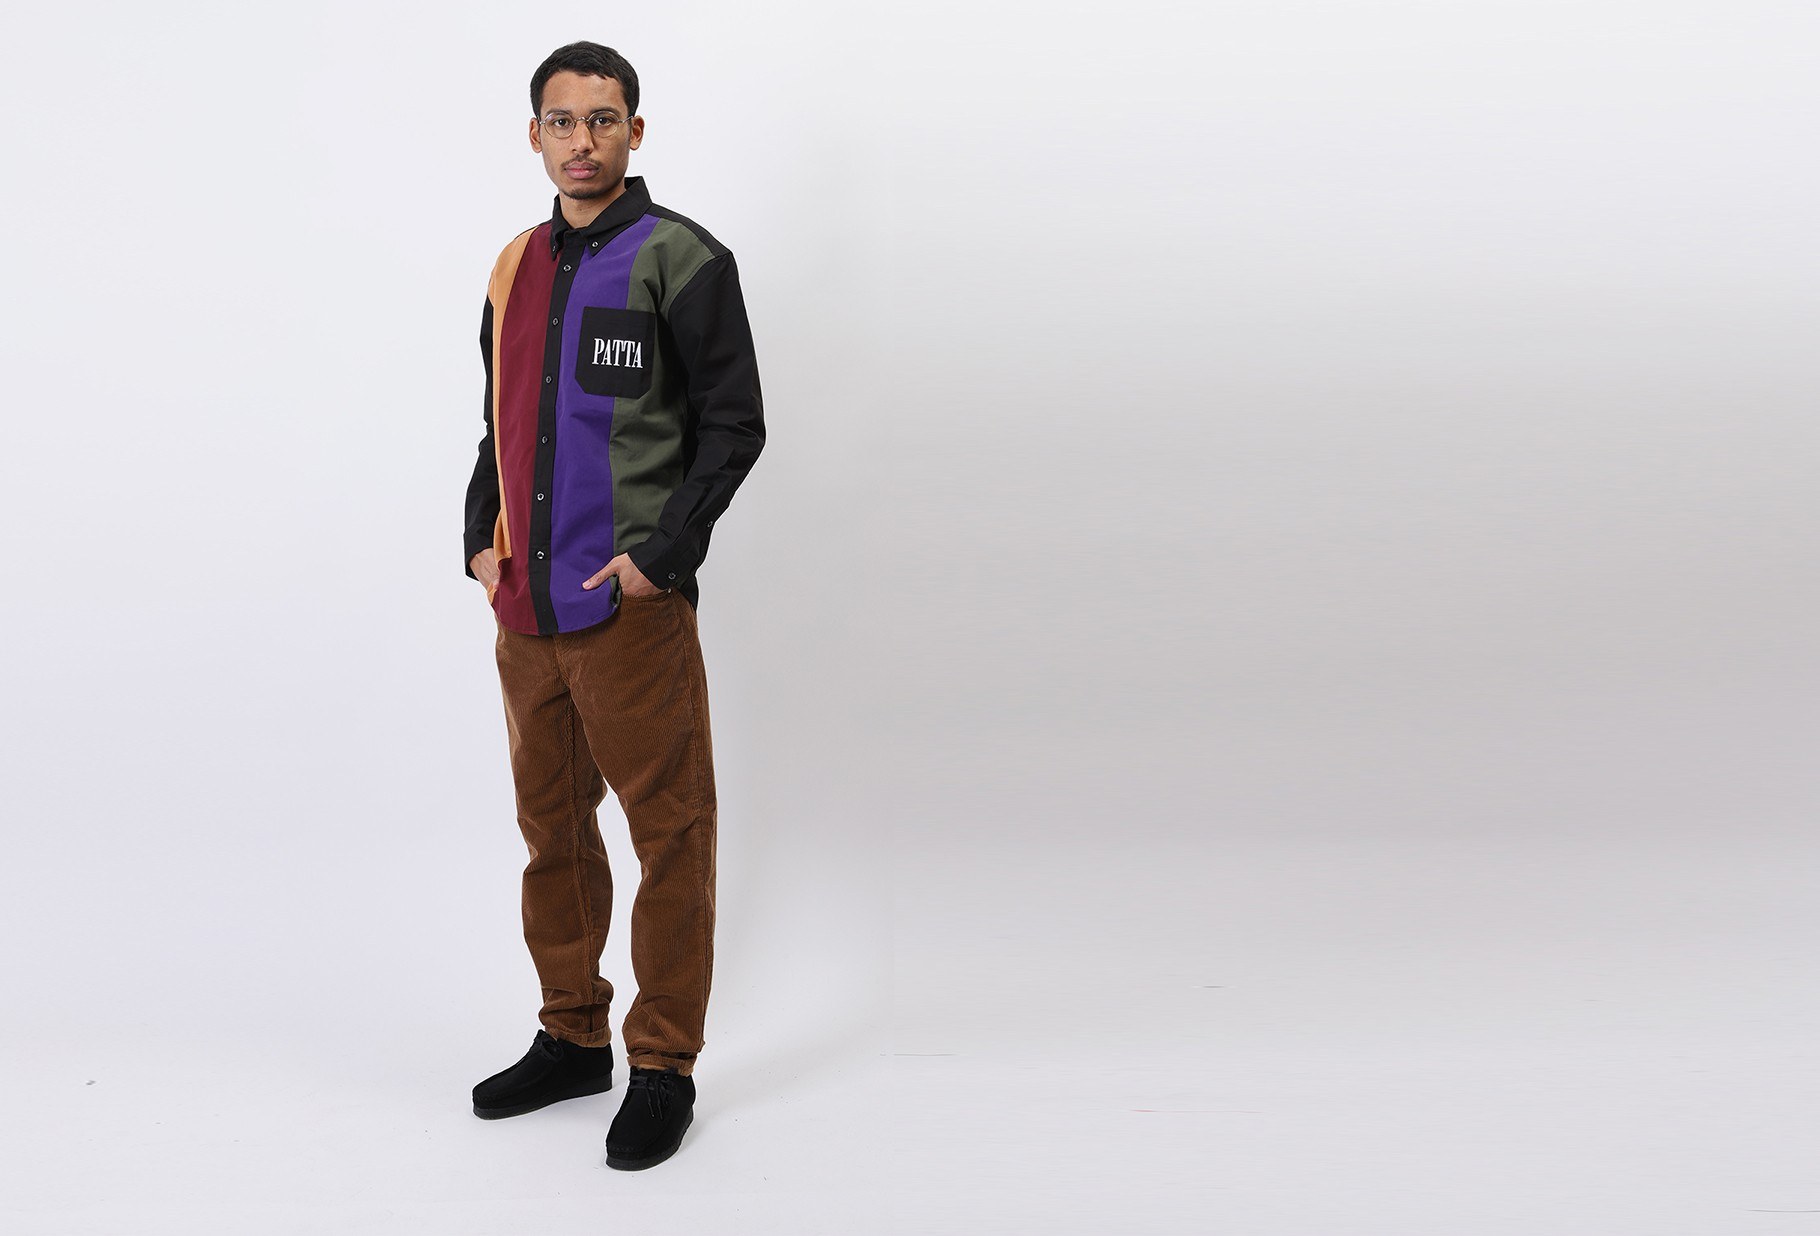 PATTA / Patta panelled relaxed button Multi